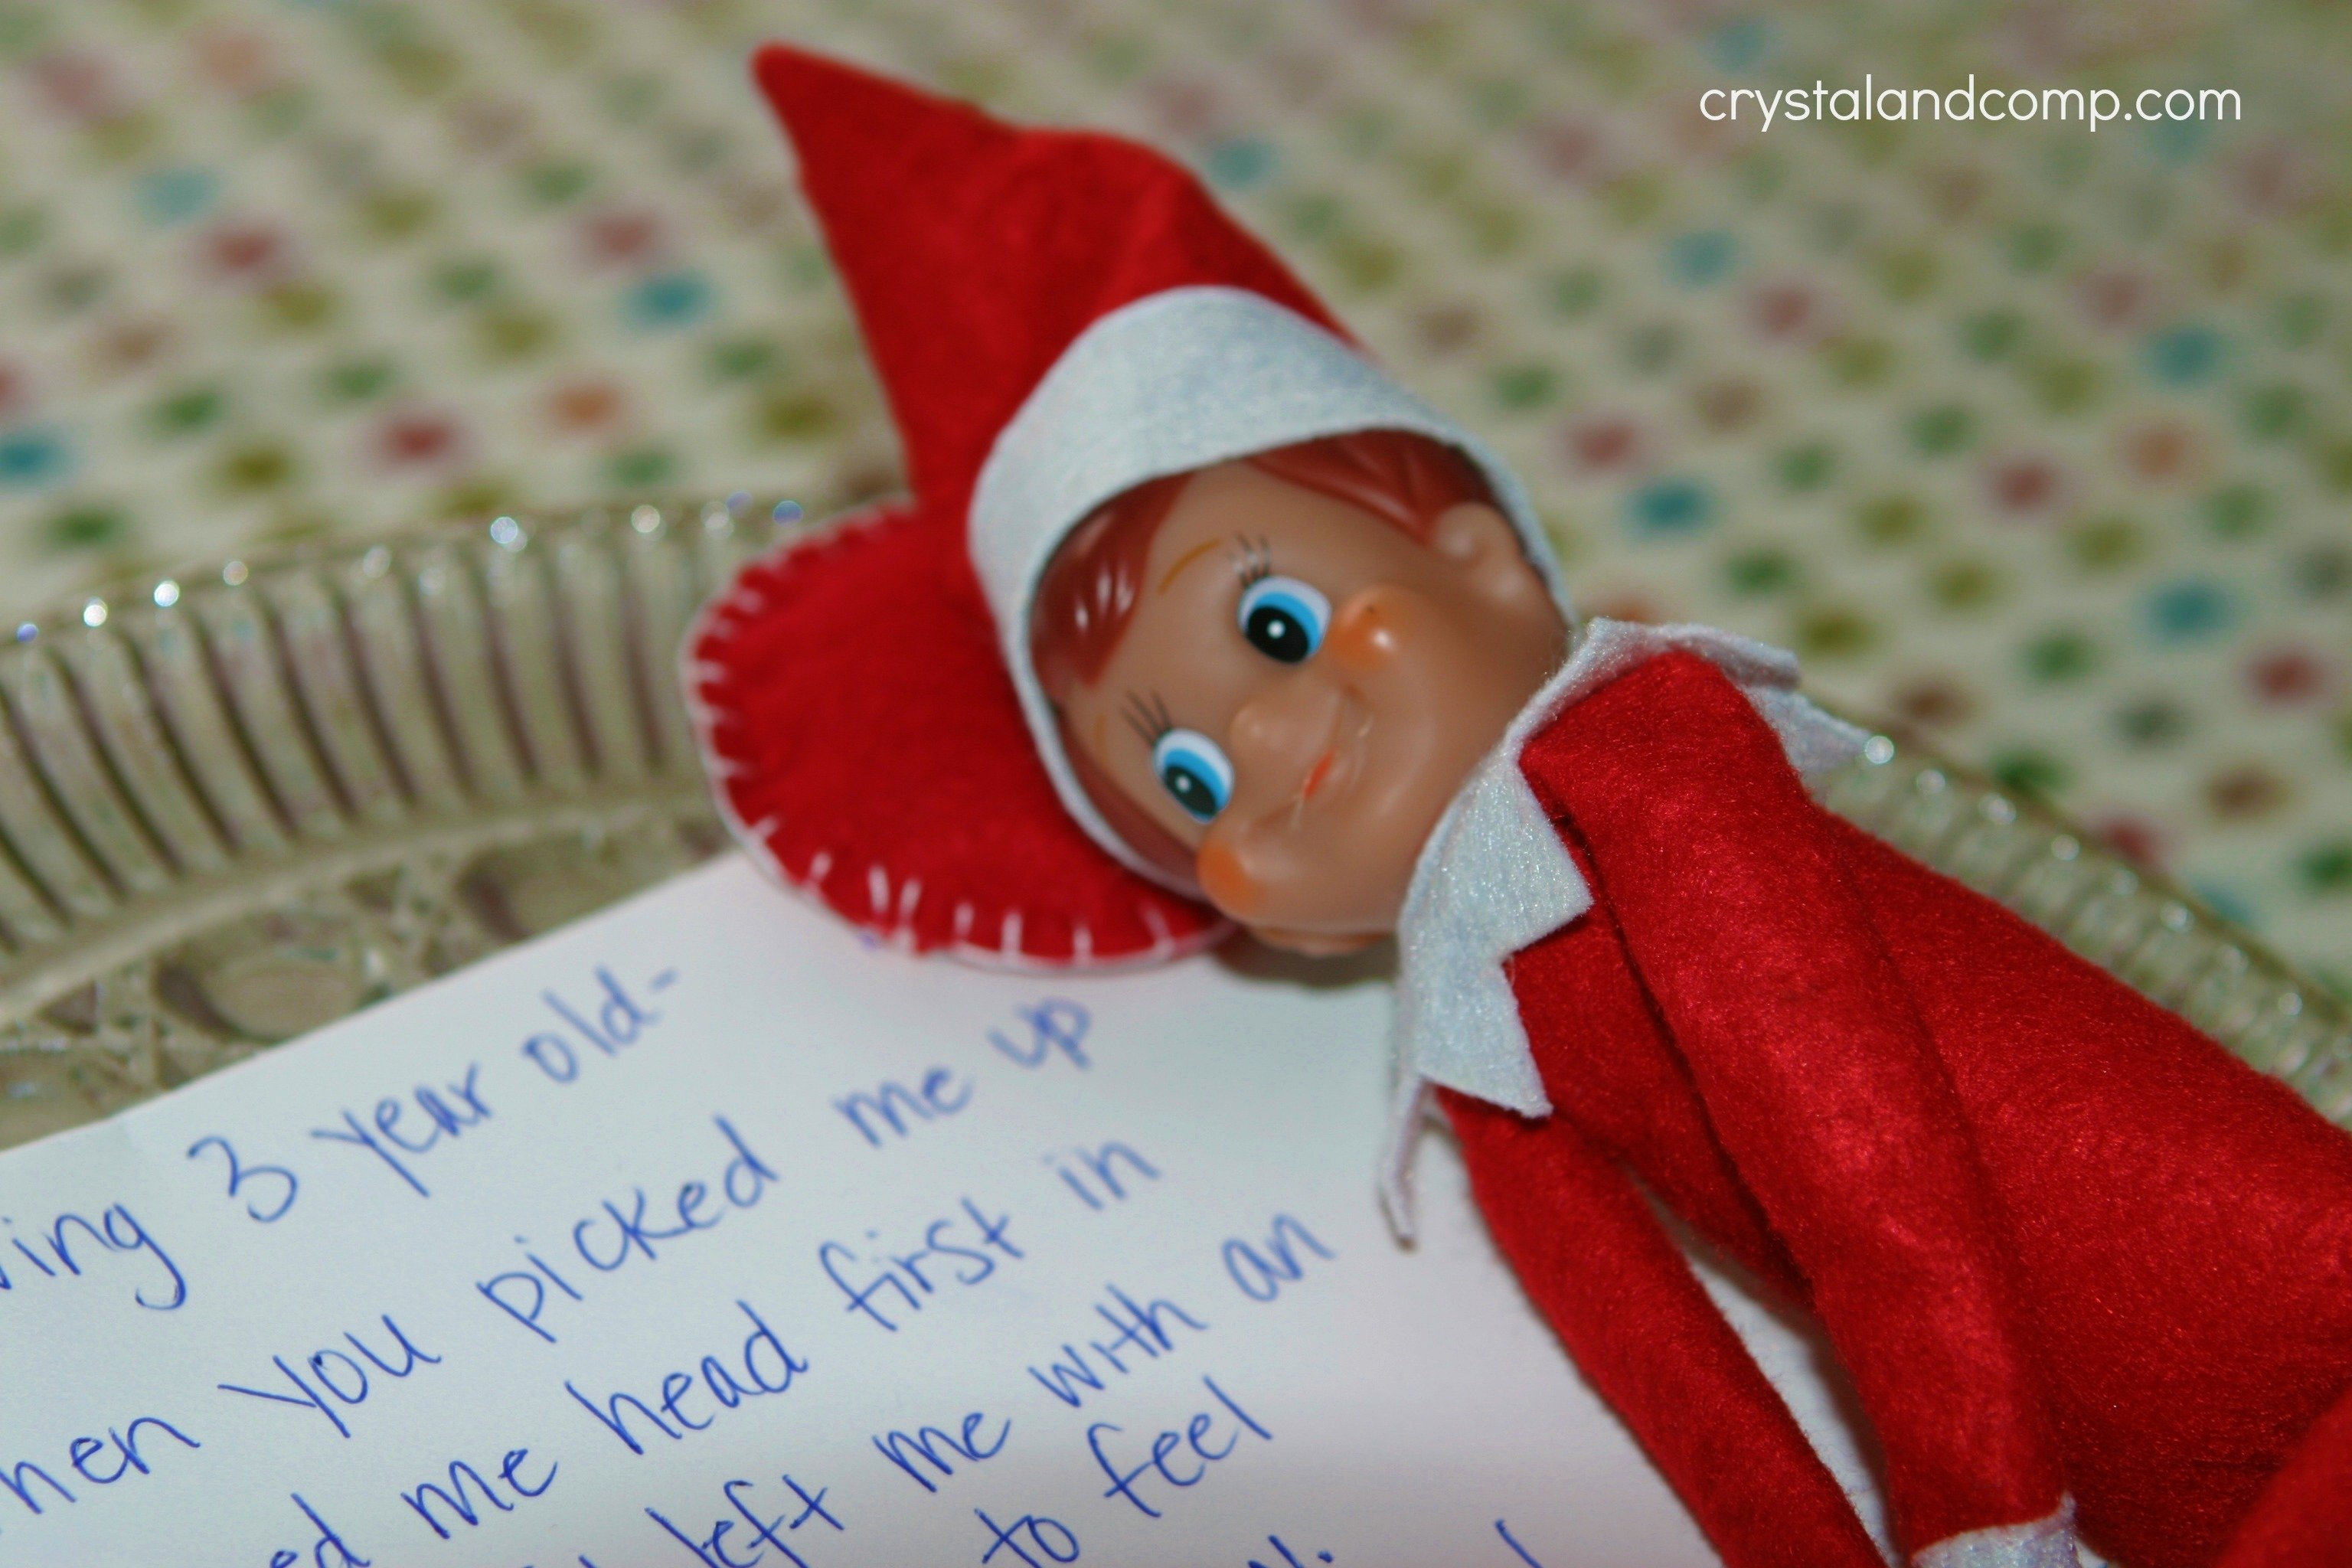 elf on the shelf had a bad fall #elfontheshelf | crystalandcomp